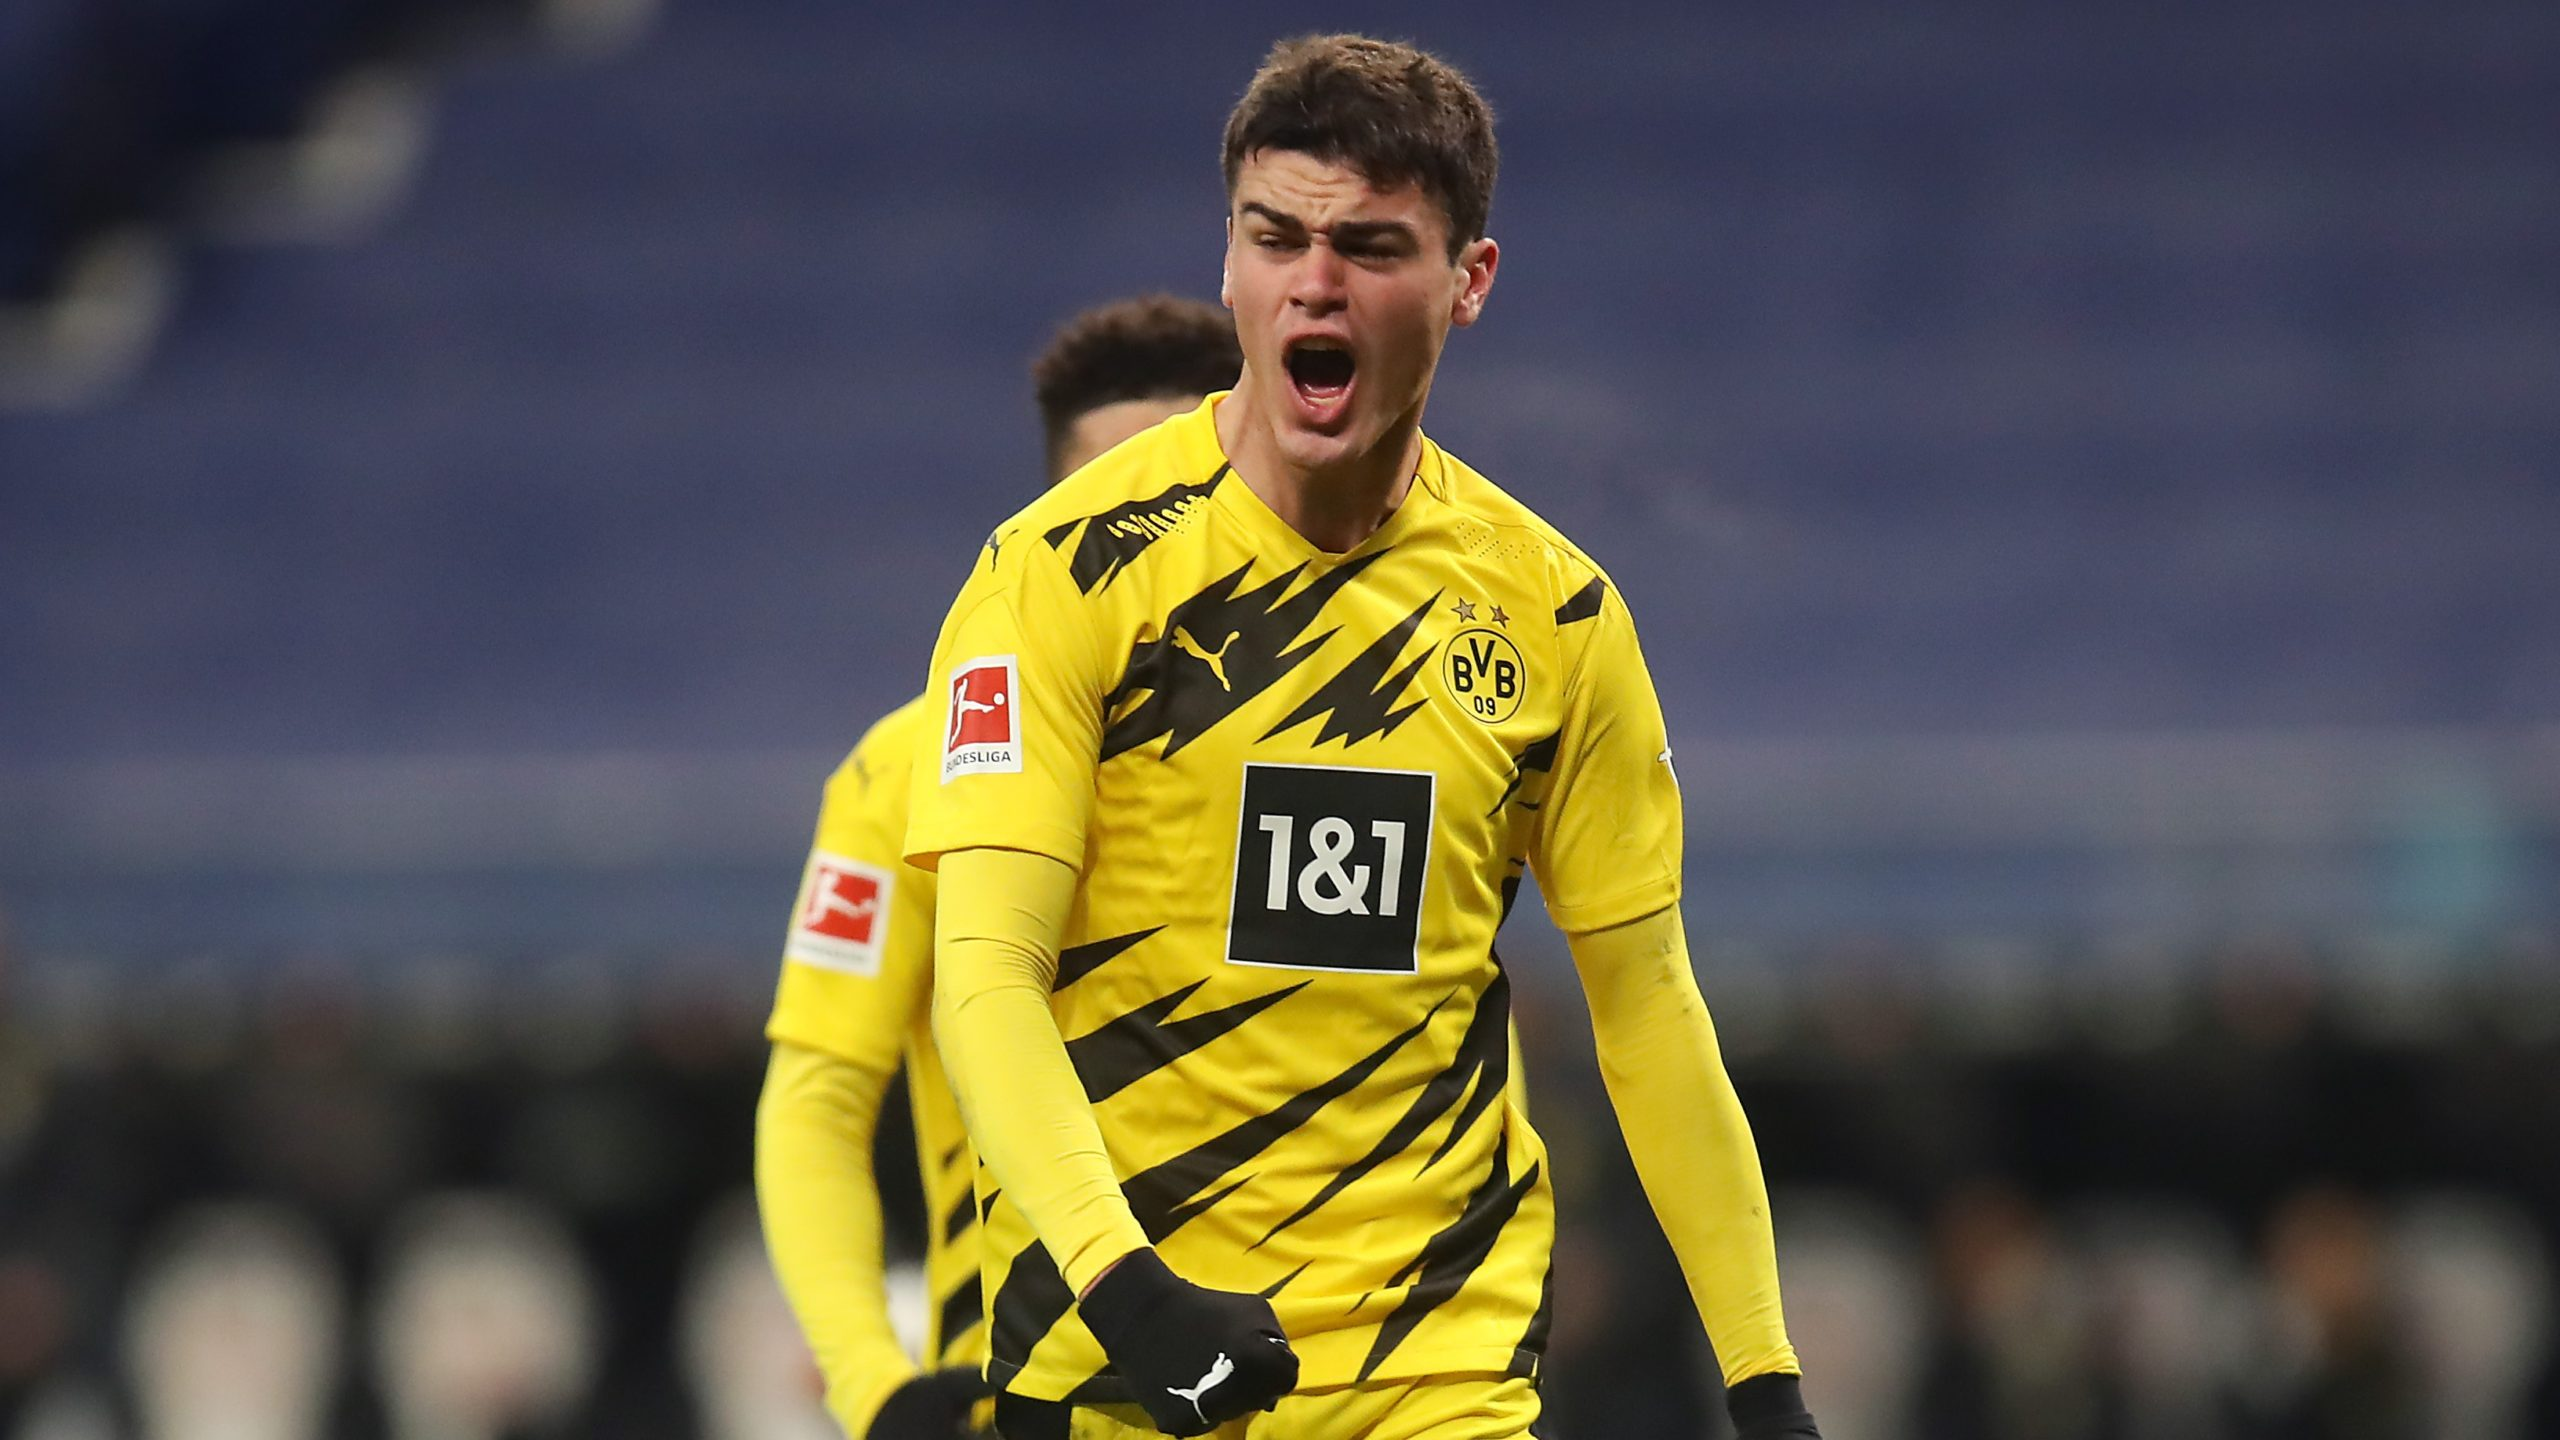 usmnt-essential-individual-reyna-given-no-7-shirt-at-borussia-dortmund-following-sanchos-transfer-to-manchester-united.jpg